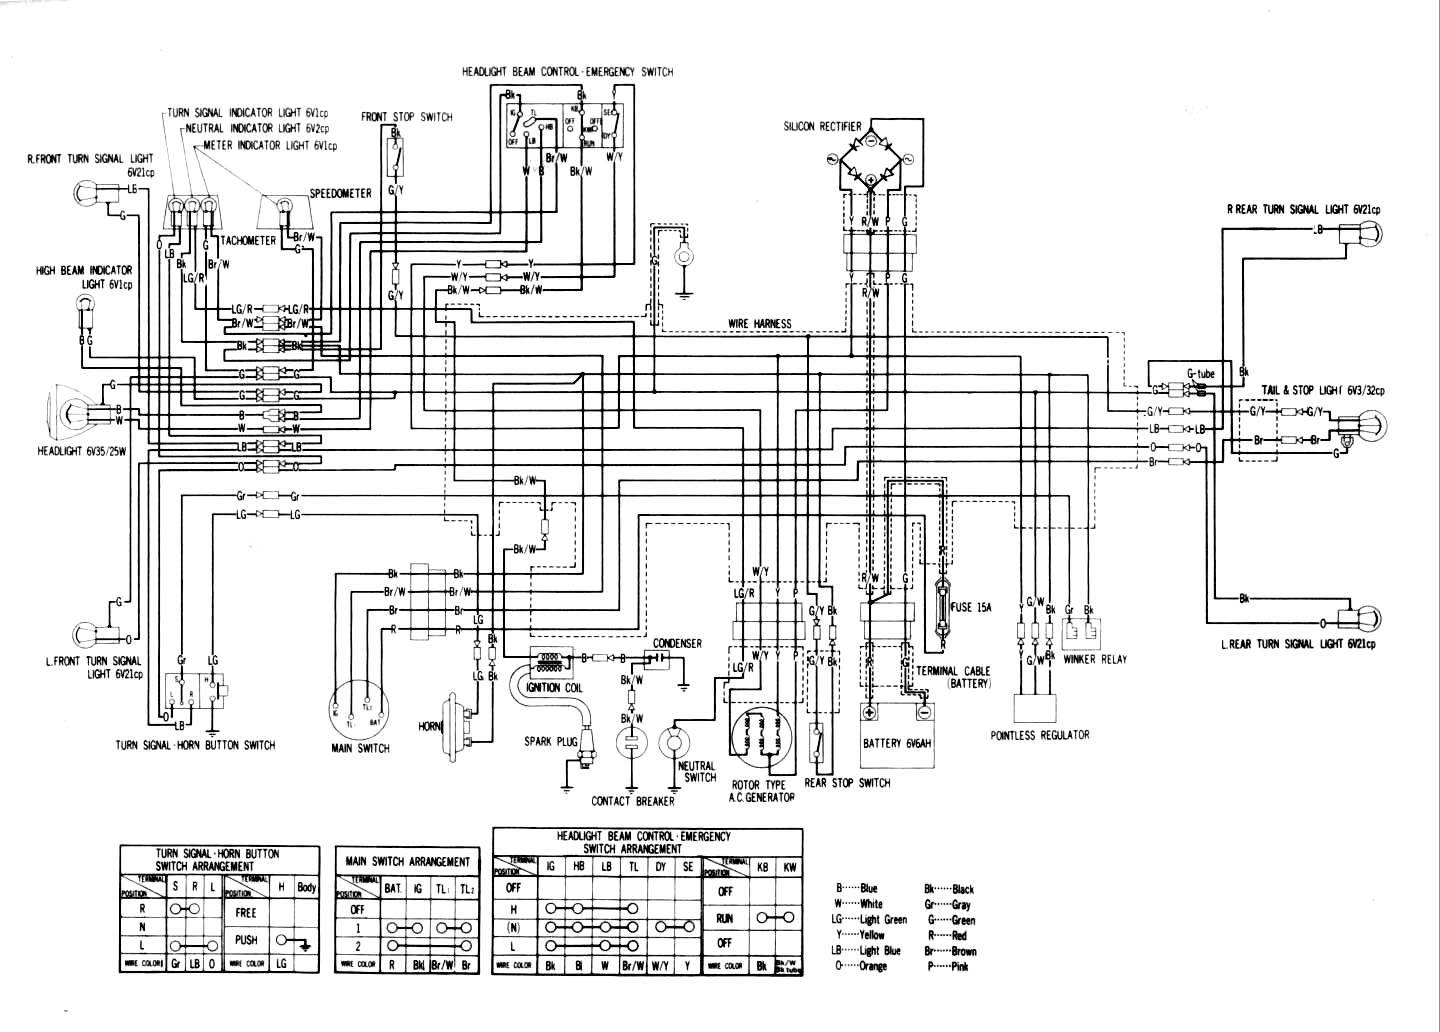 1983 Honda Shadow Wiring Diagram http://www.cyclechaos.com/images/e/e9/